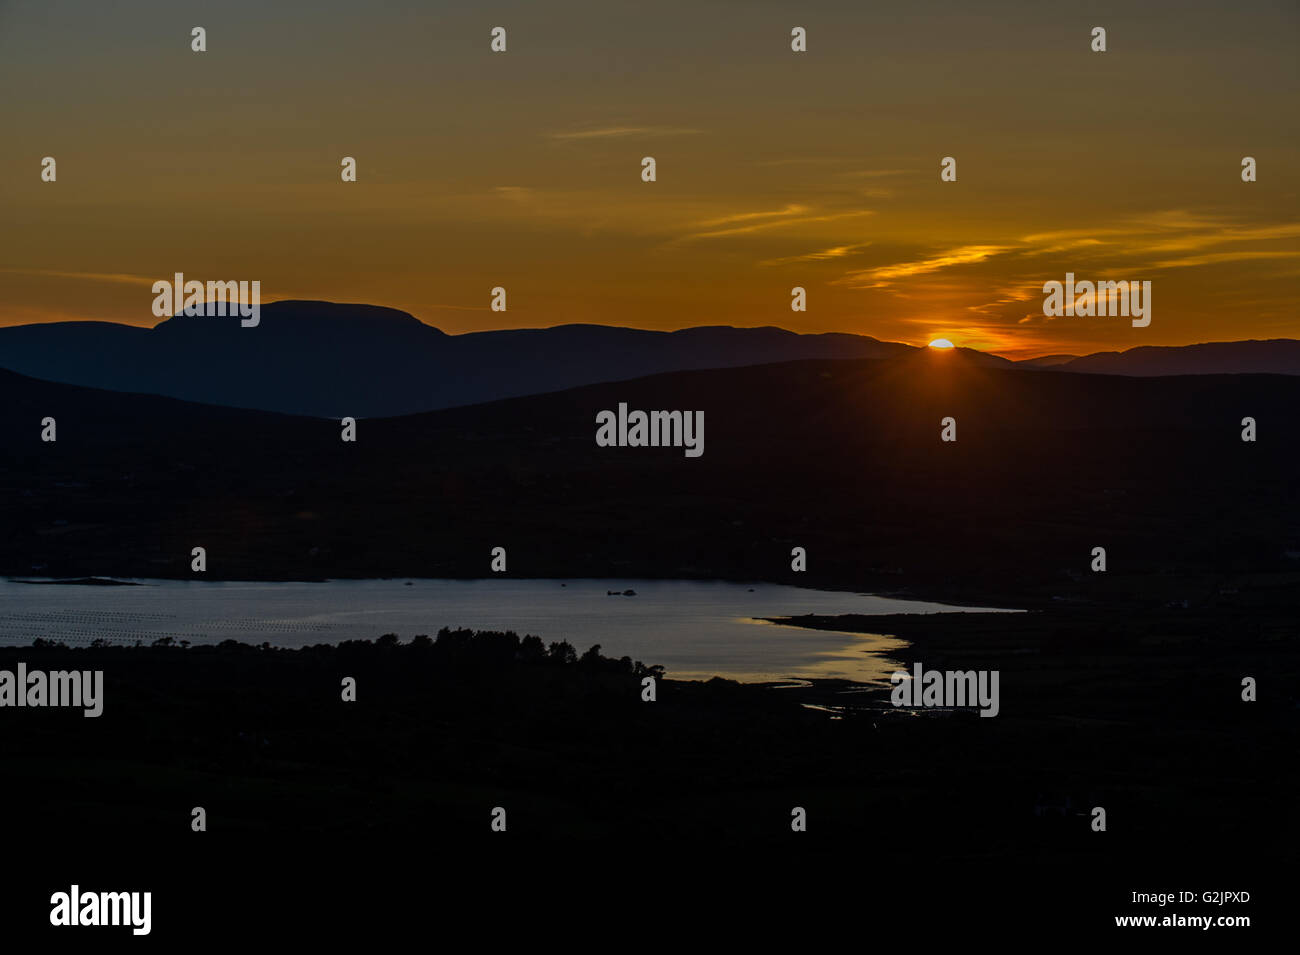 A sunset pictured from Mount Corrin, Ballydehob, on the Sheep's Head Way overlooking  Blairs Cove, West Cork, - Stock Image